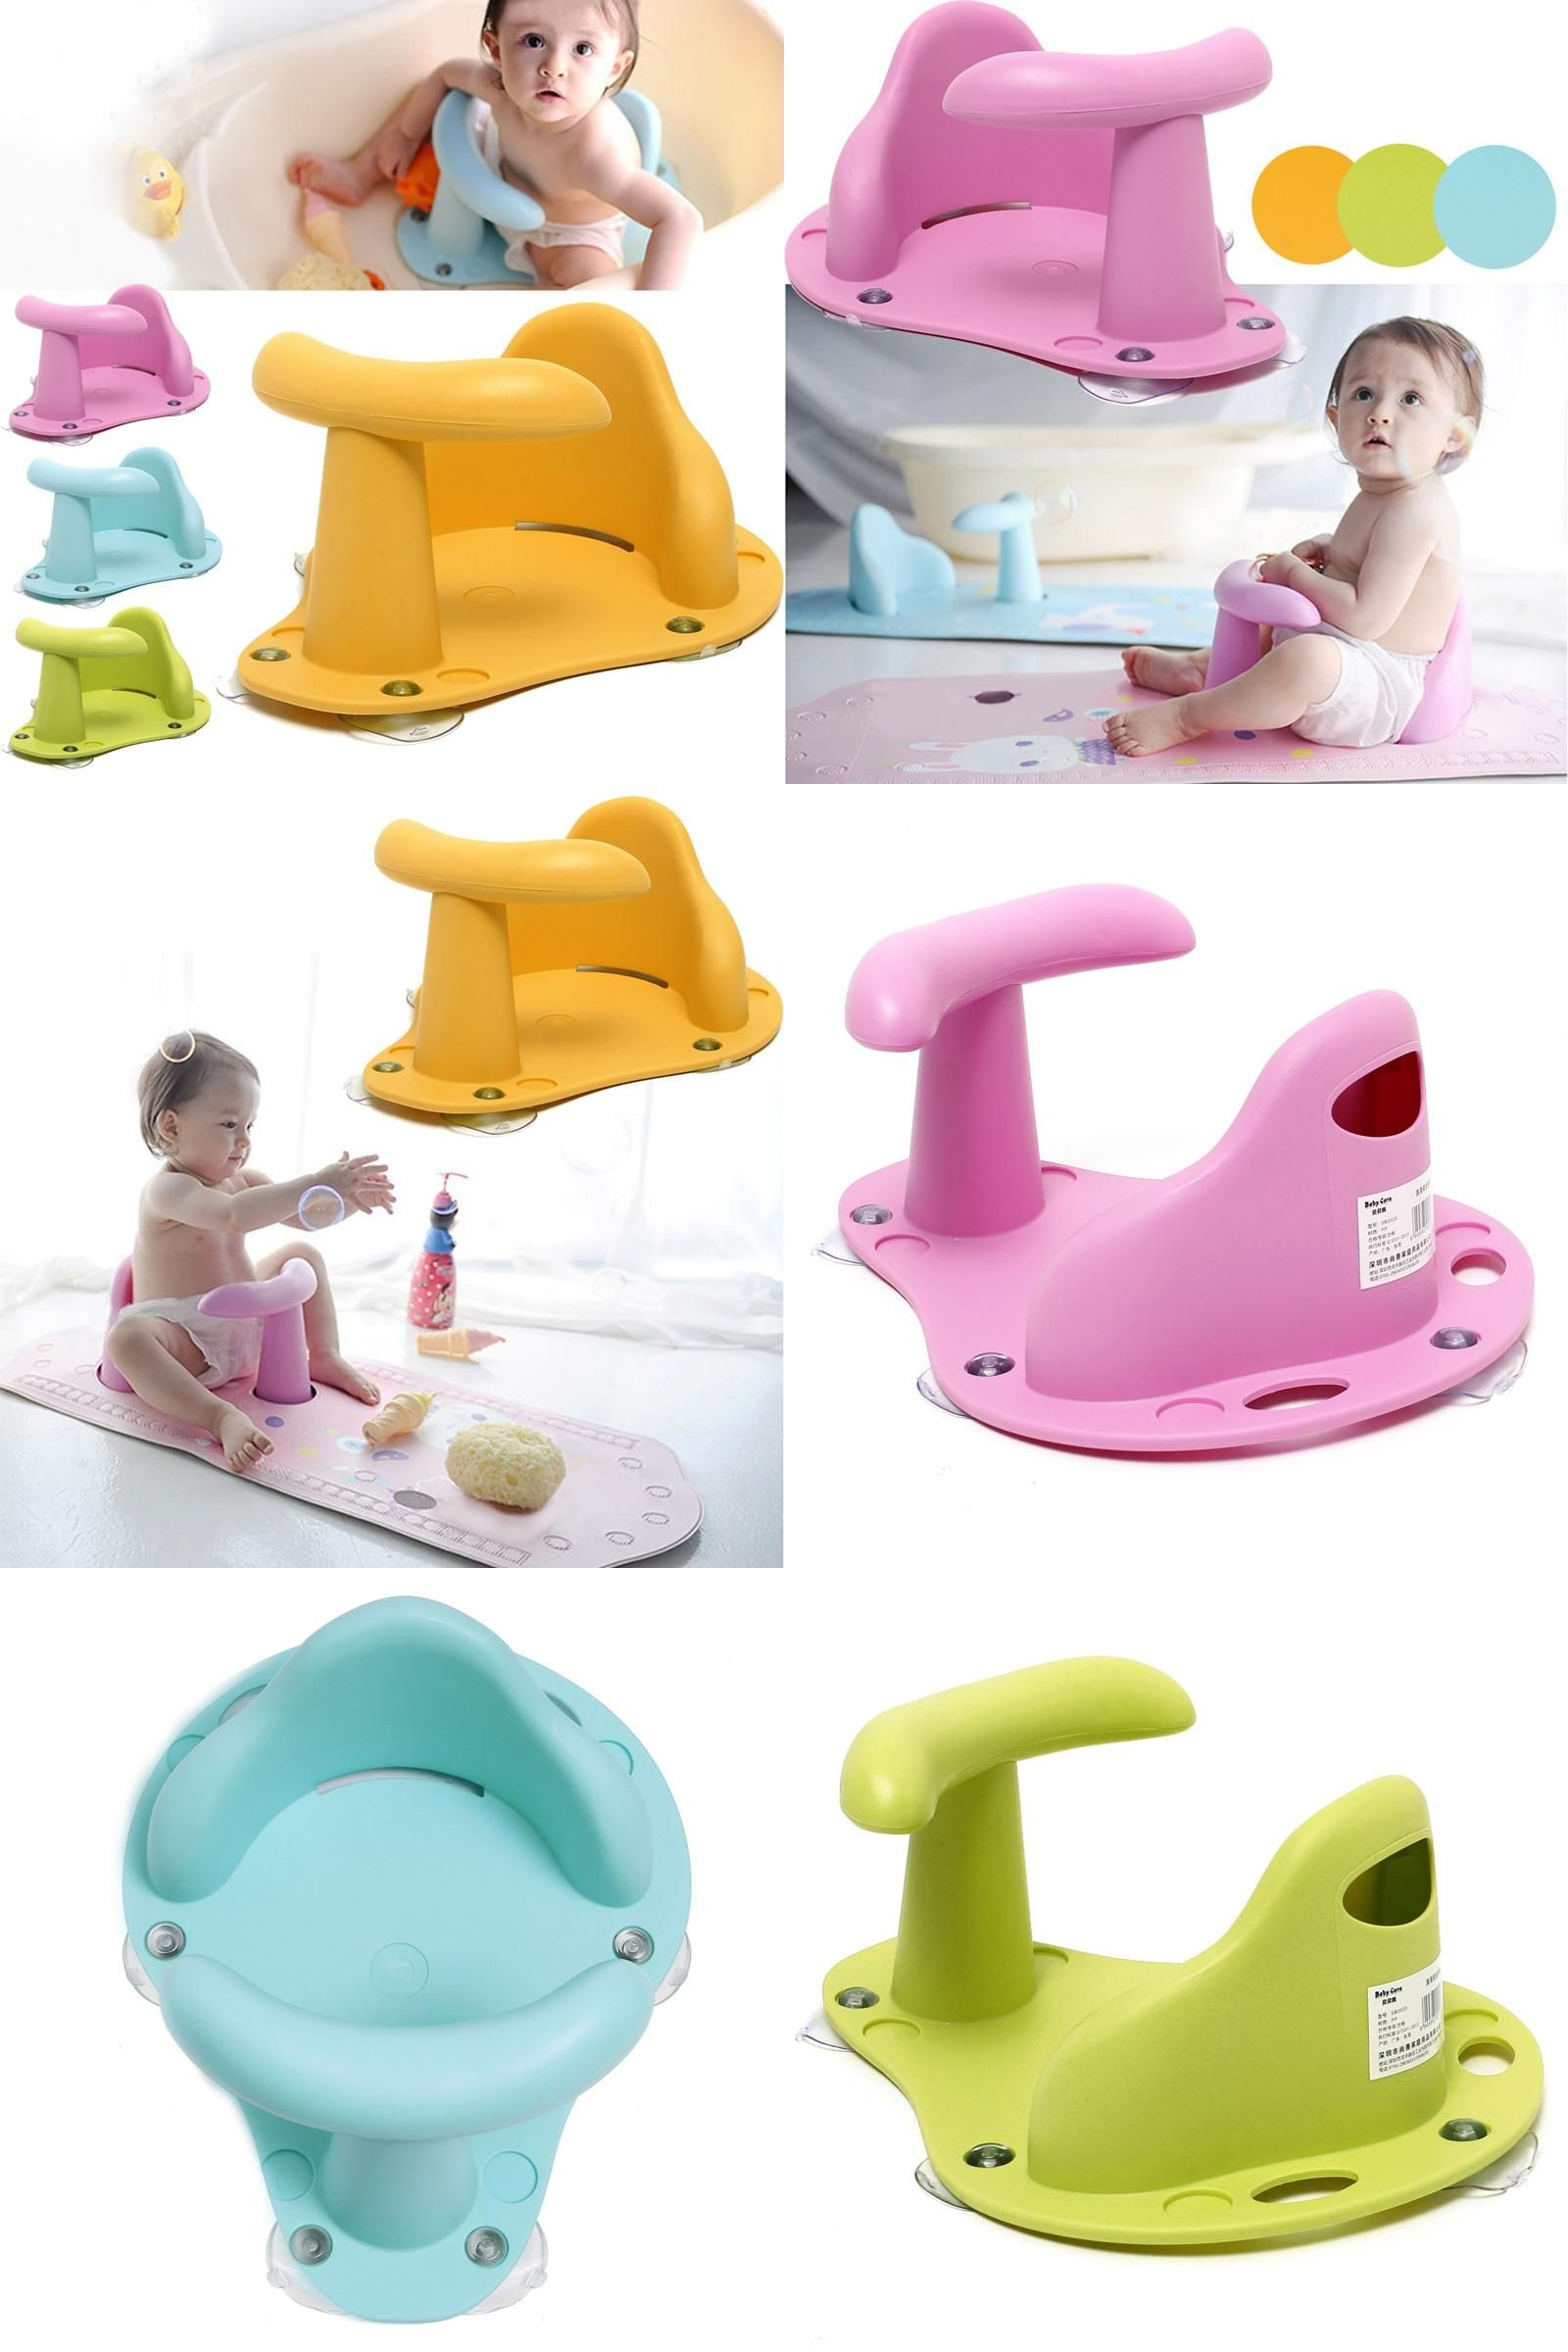 Visit to Buy] Baby Bath Tub Ring Baby Bath Chair Kids Anti Slip ...